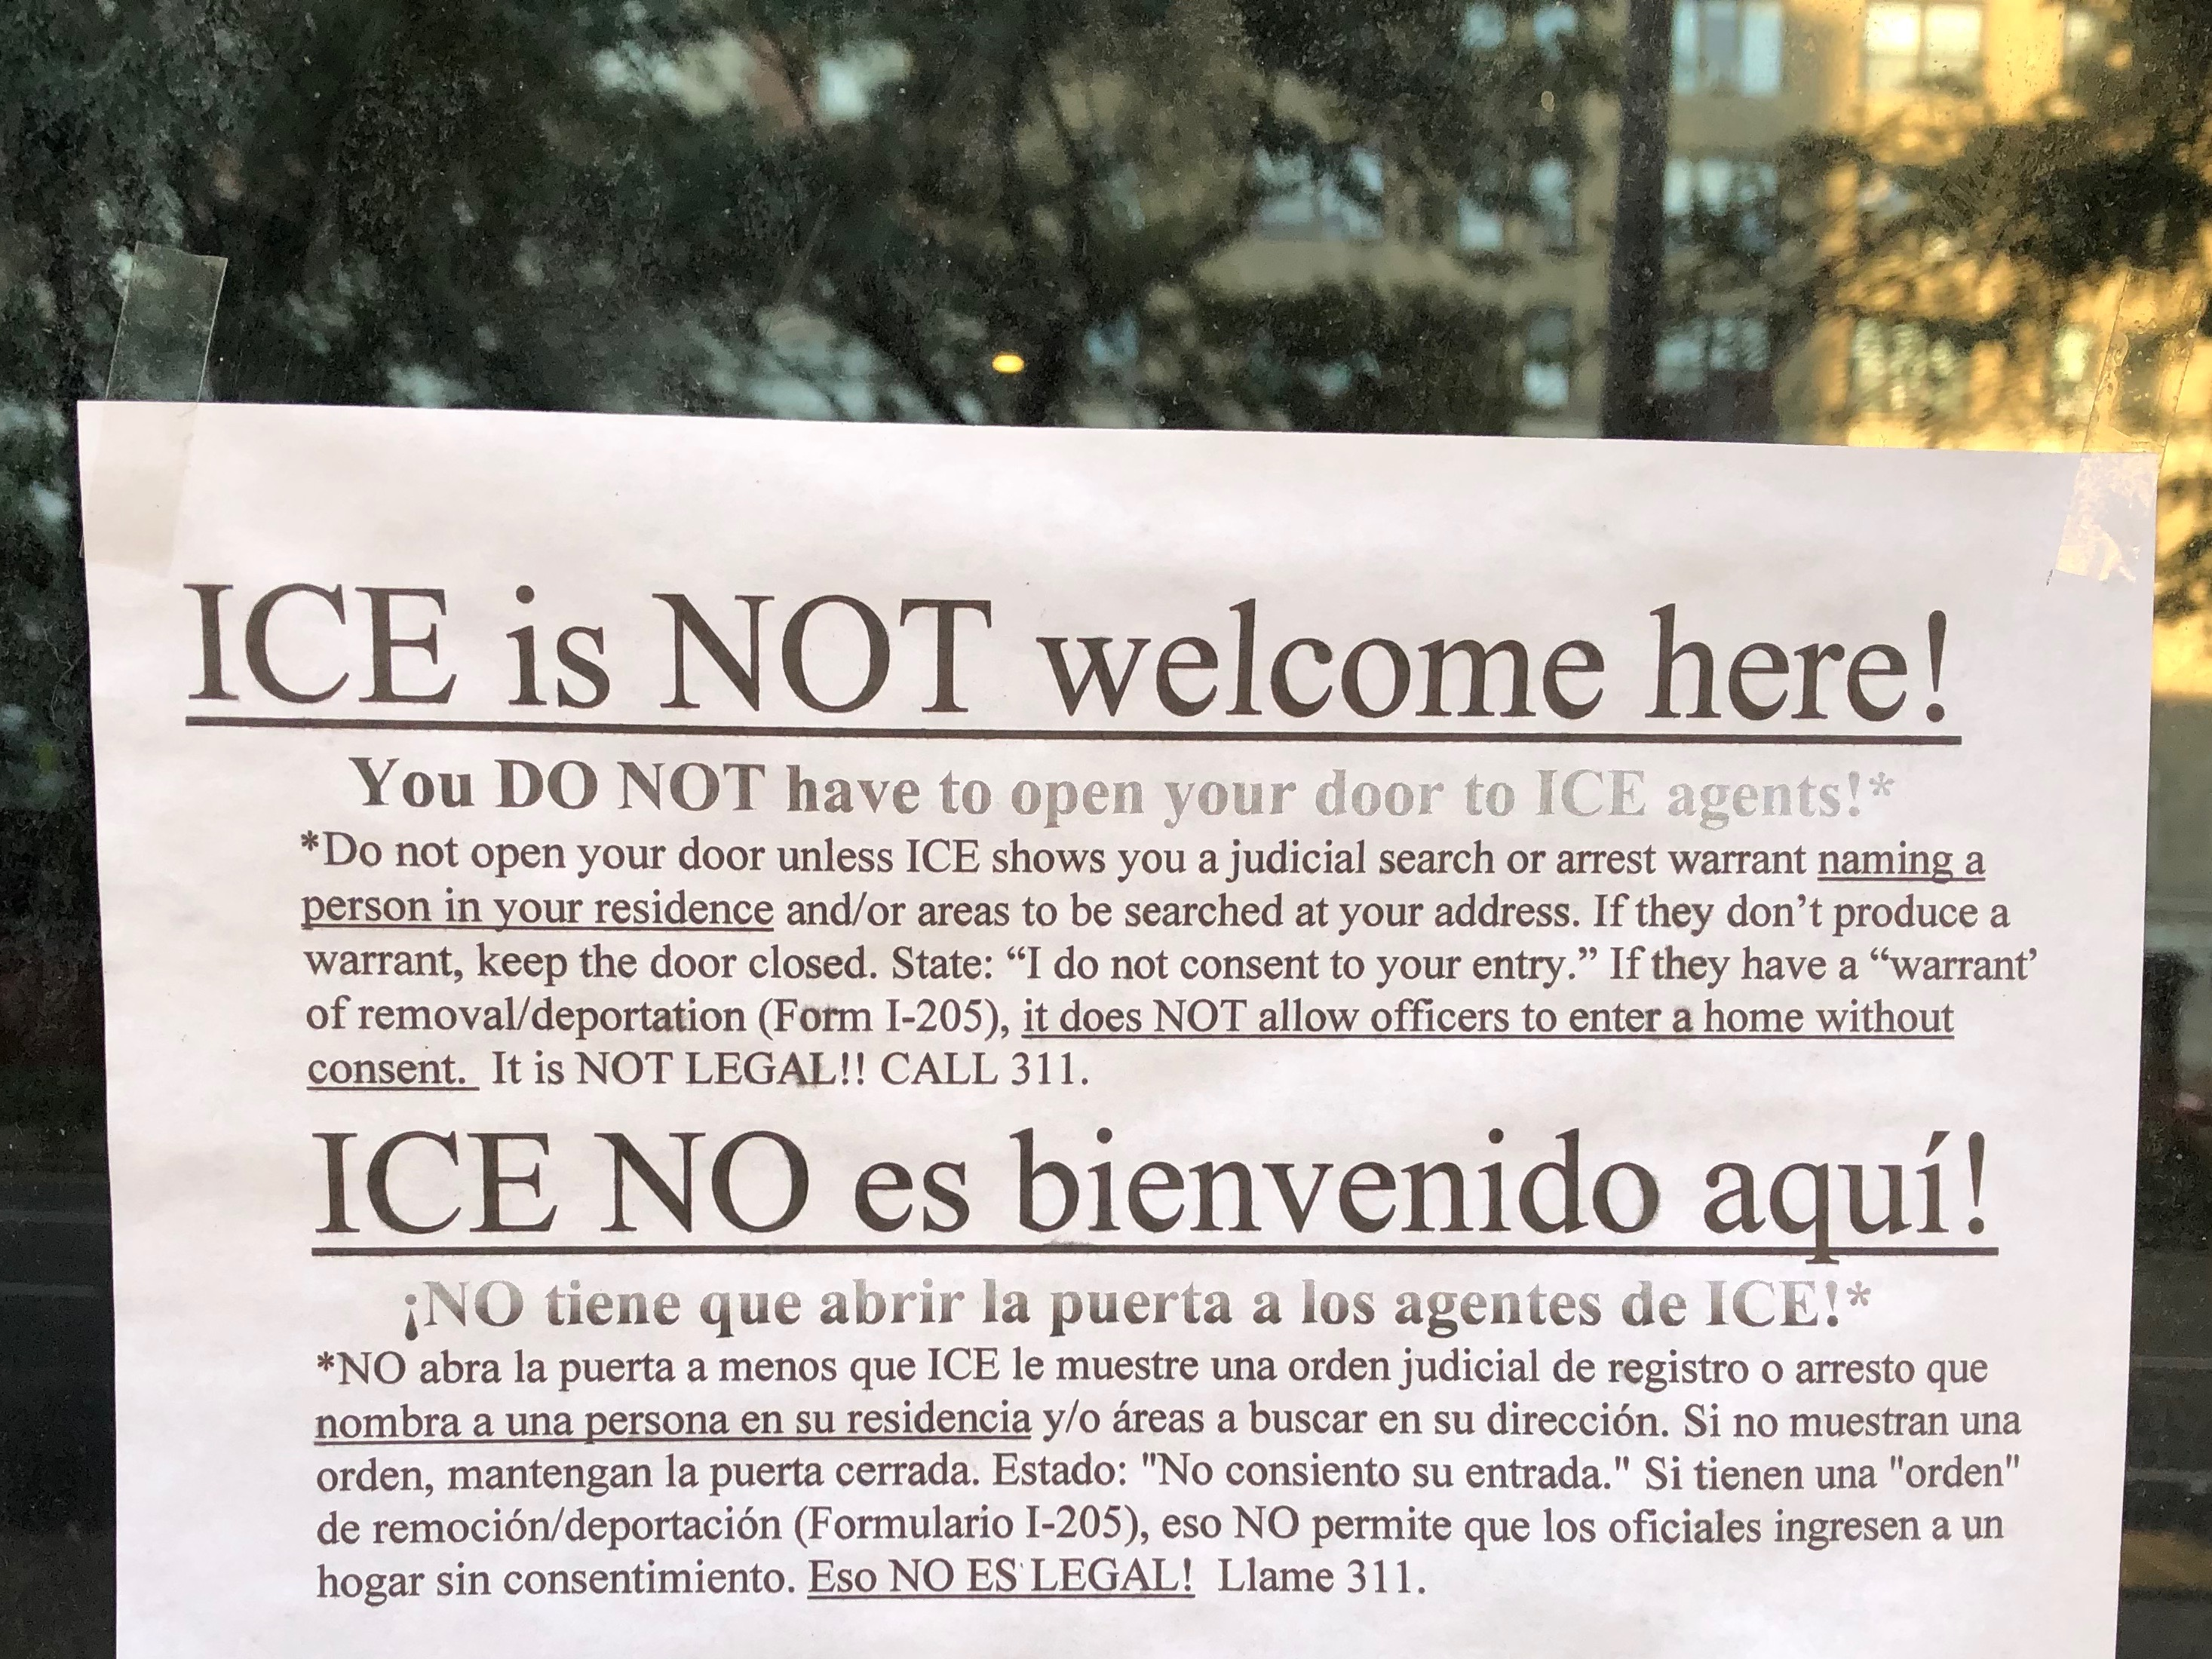 081119-ICE-not-Welcome